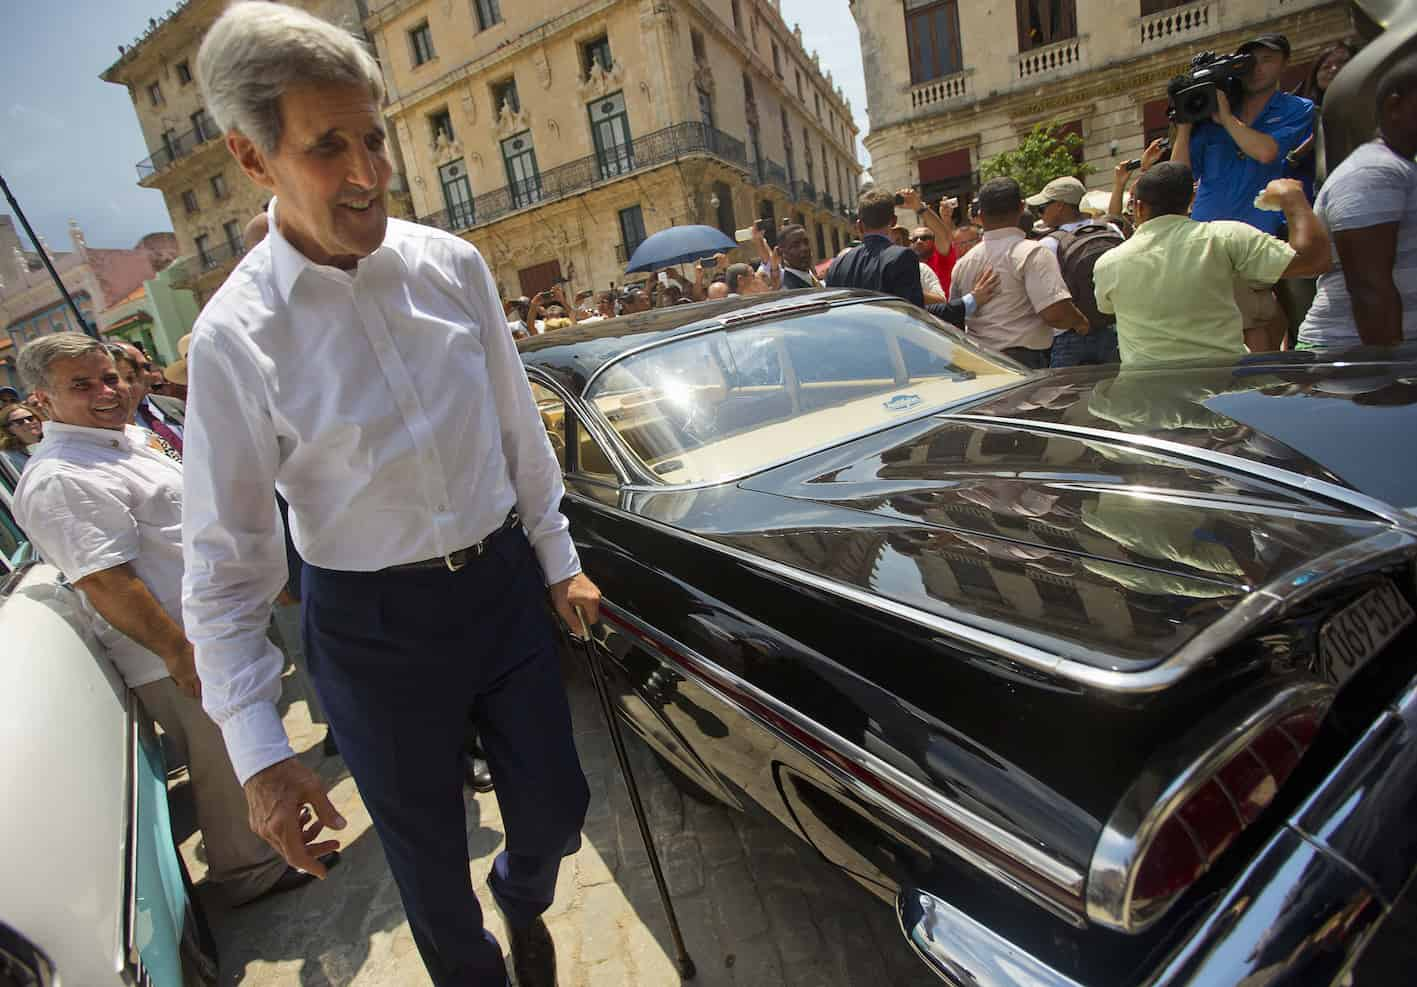 U.S. Secretary of State John Kerry in Cuba | US Cuba relations